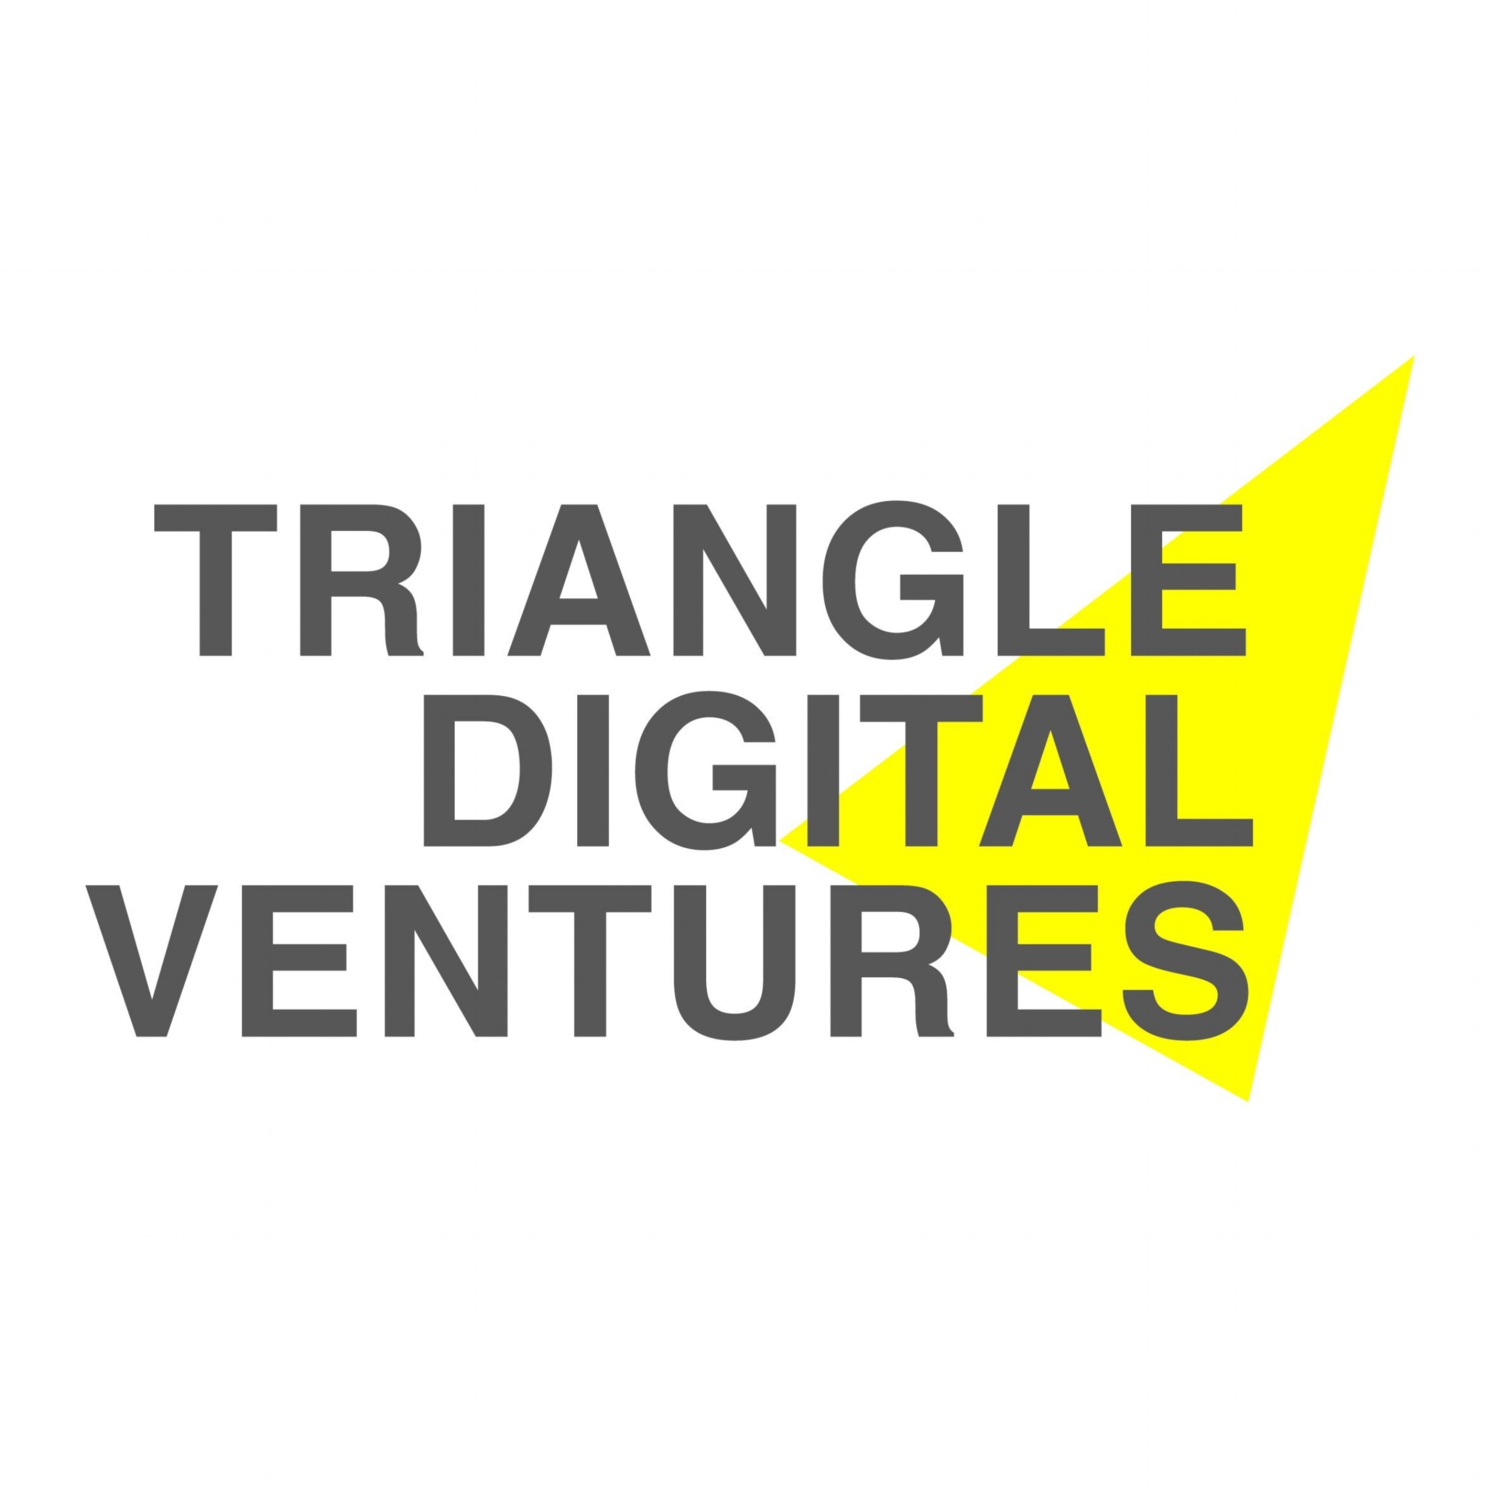 Triangle Digital Ventures